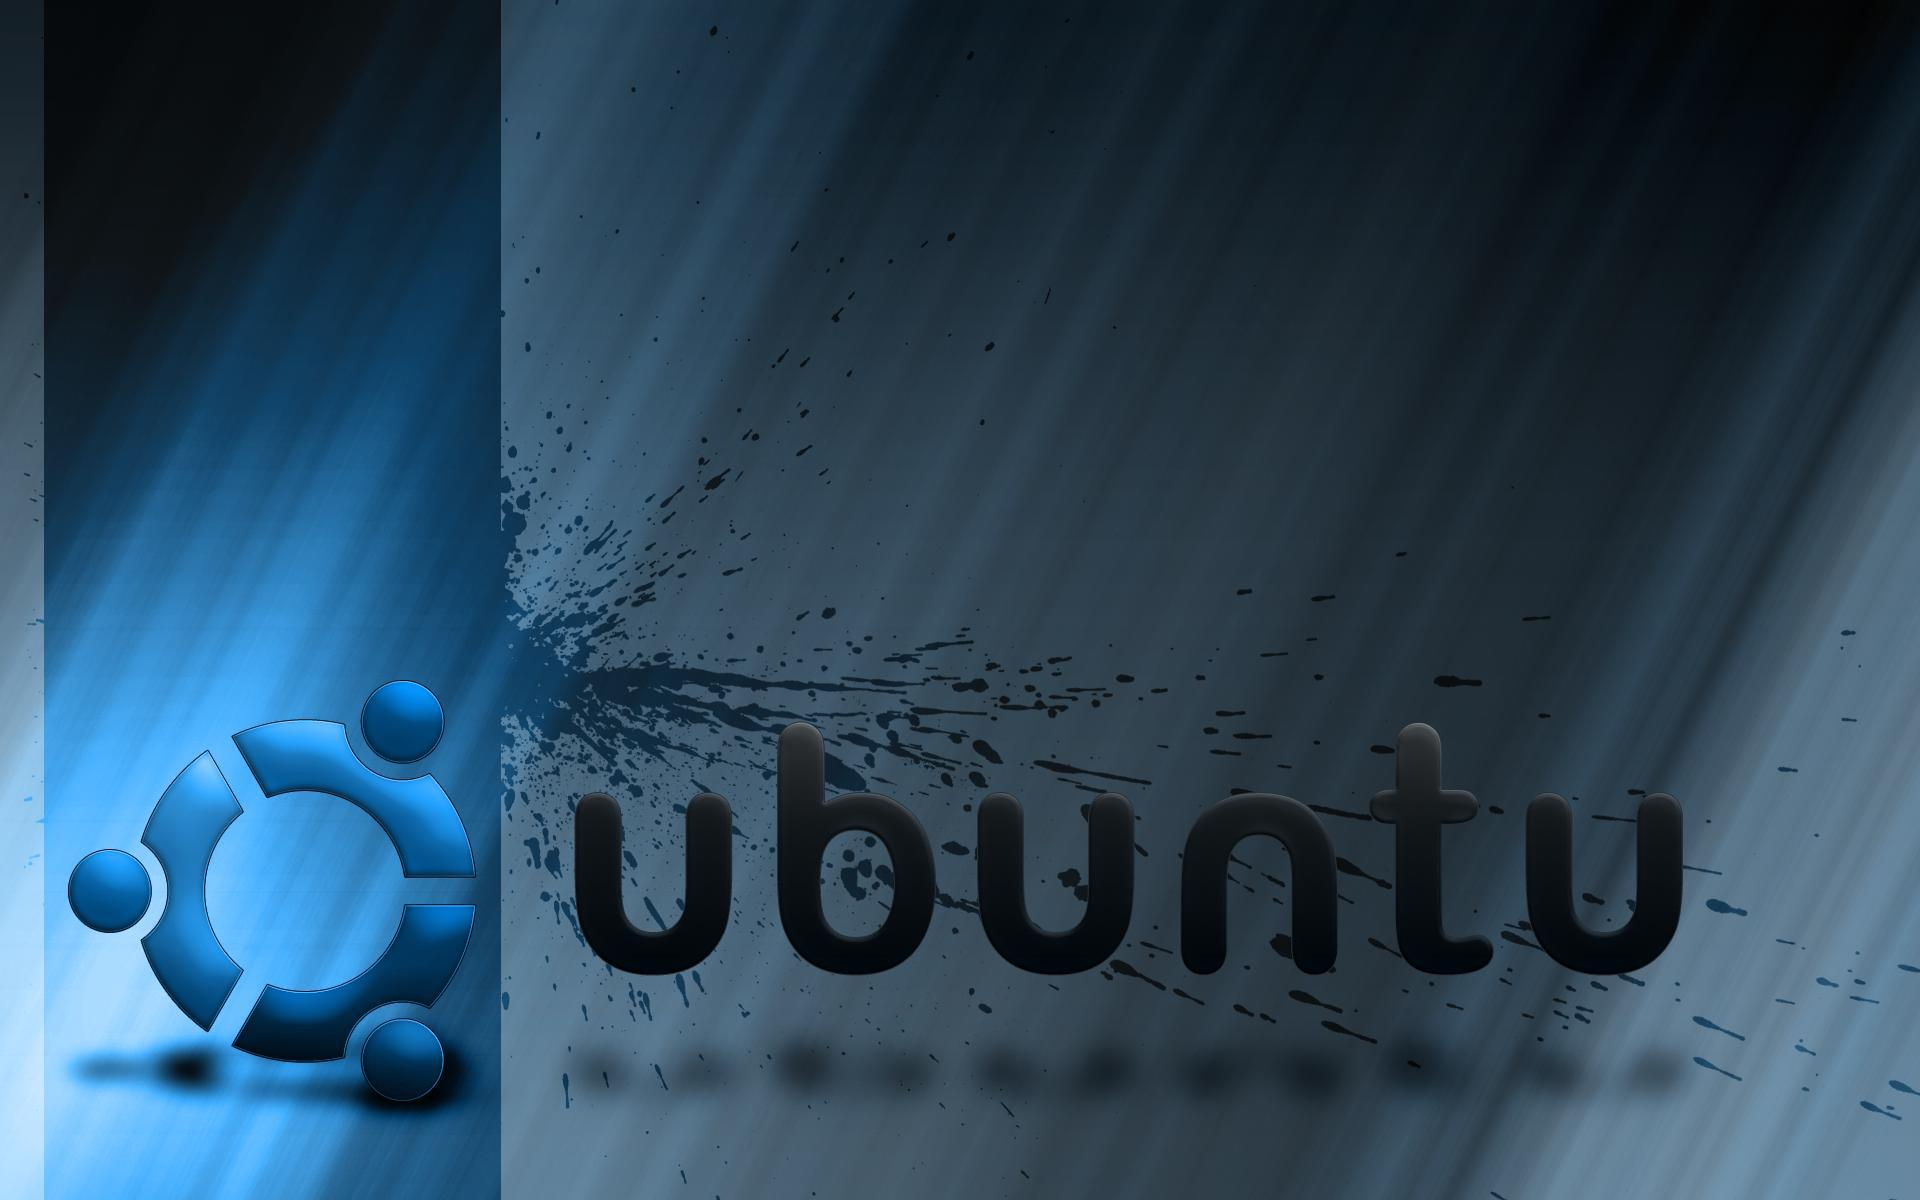 Cool Linux Backgrounds